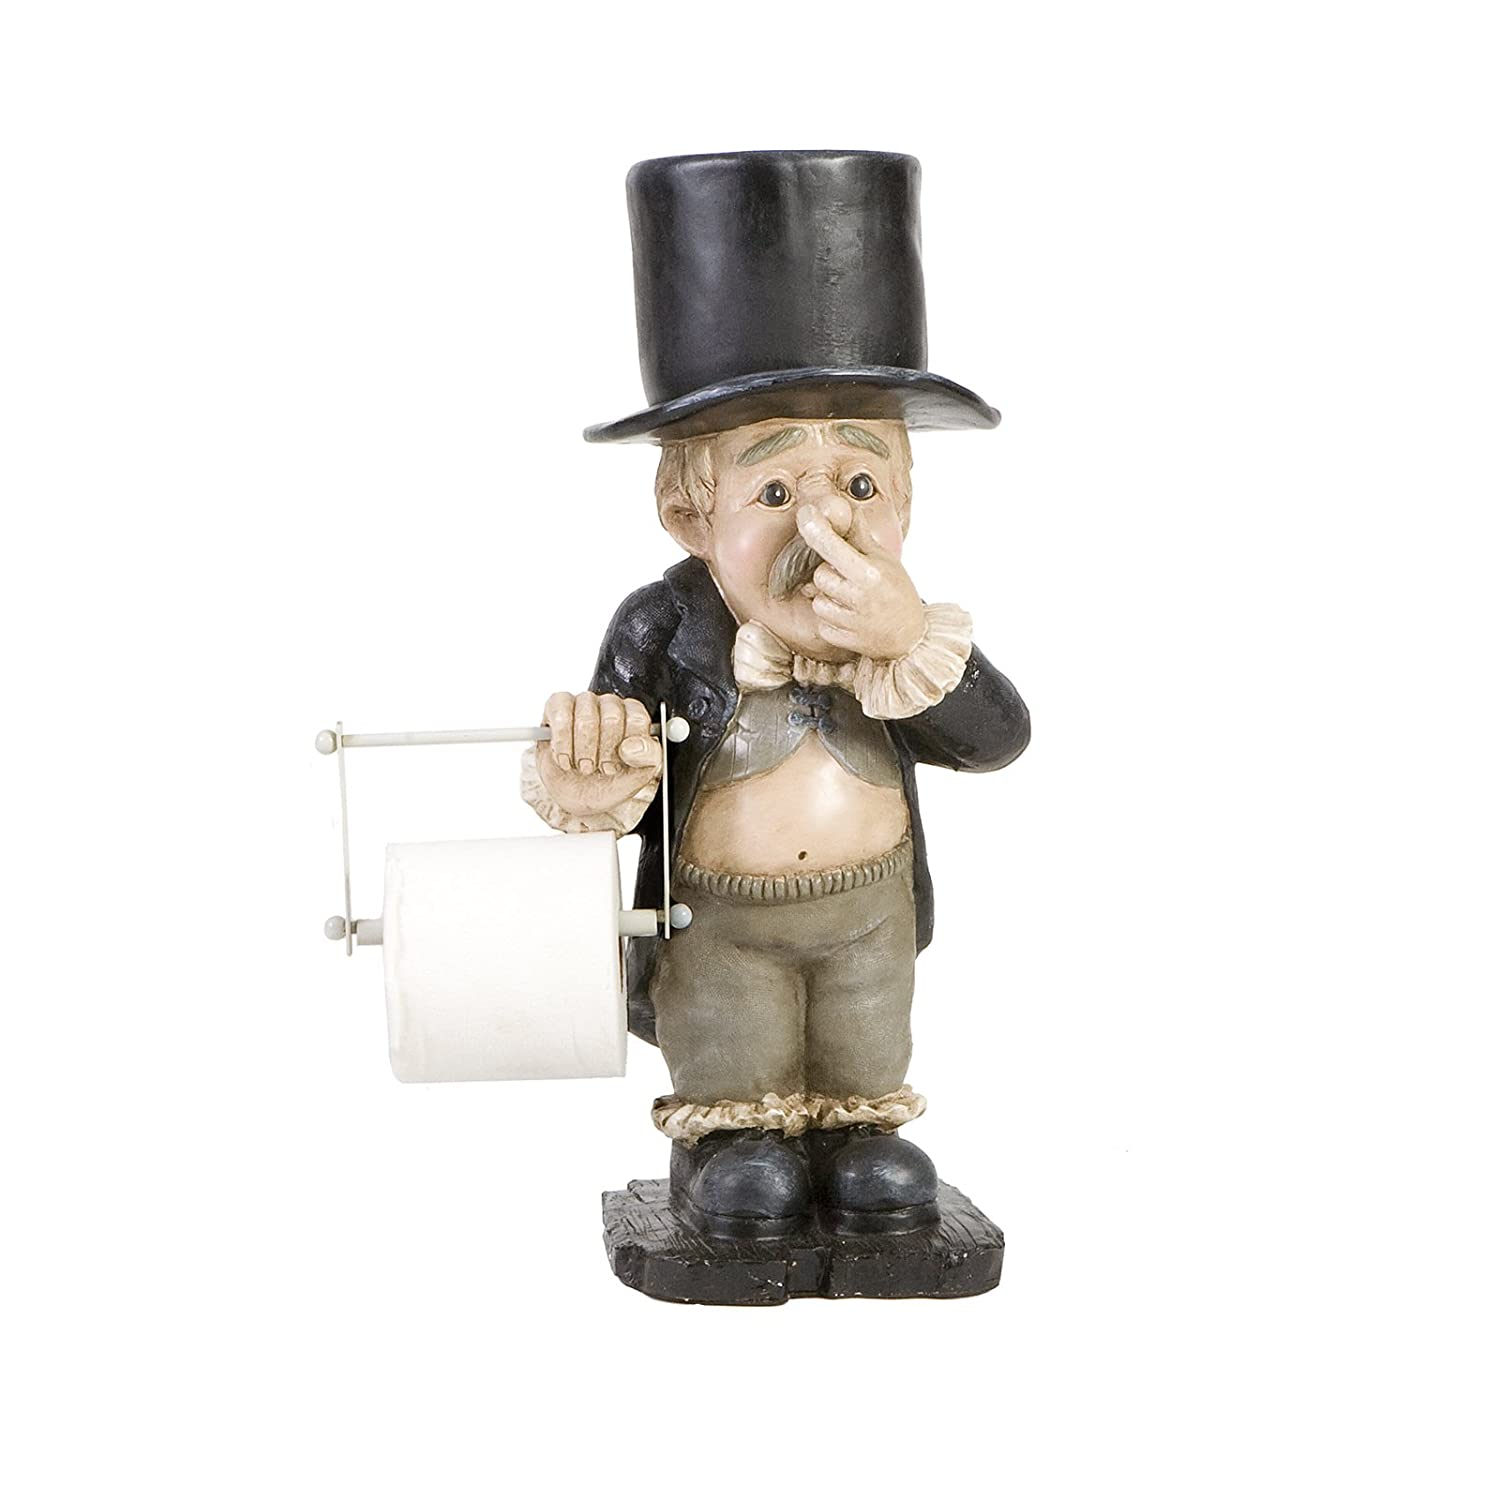 SEI Poly-Resin Bathroom-Tissue Holder, Butler. Precio: $74